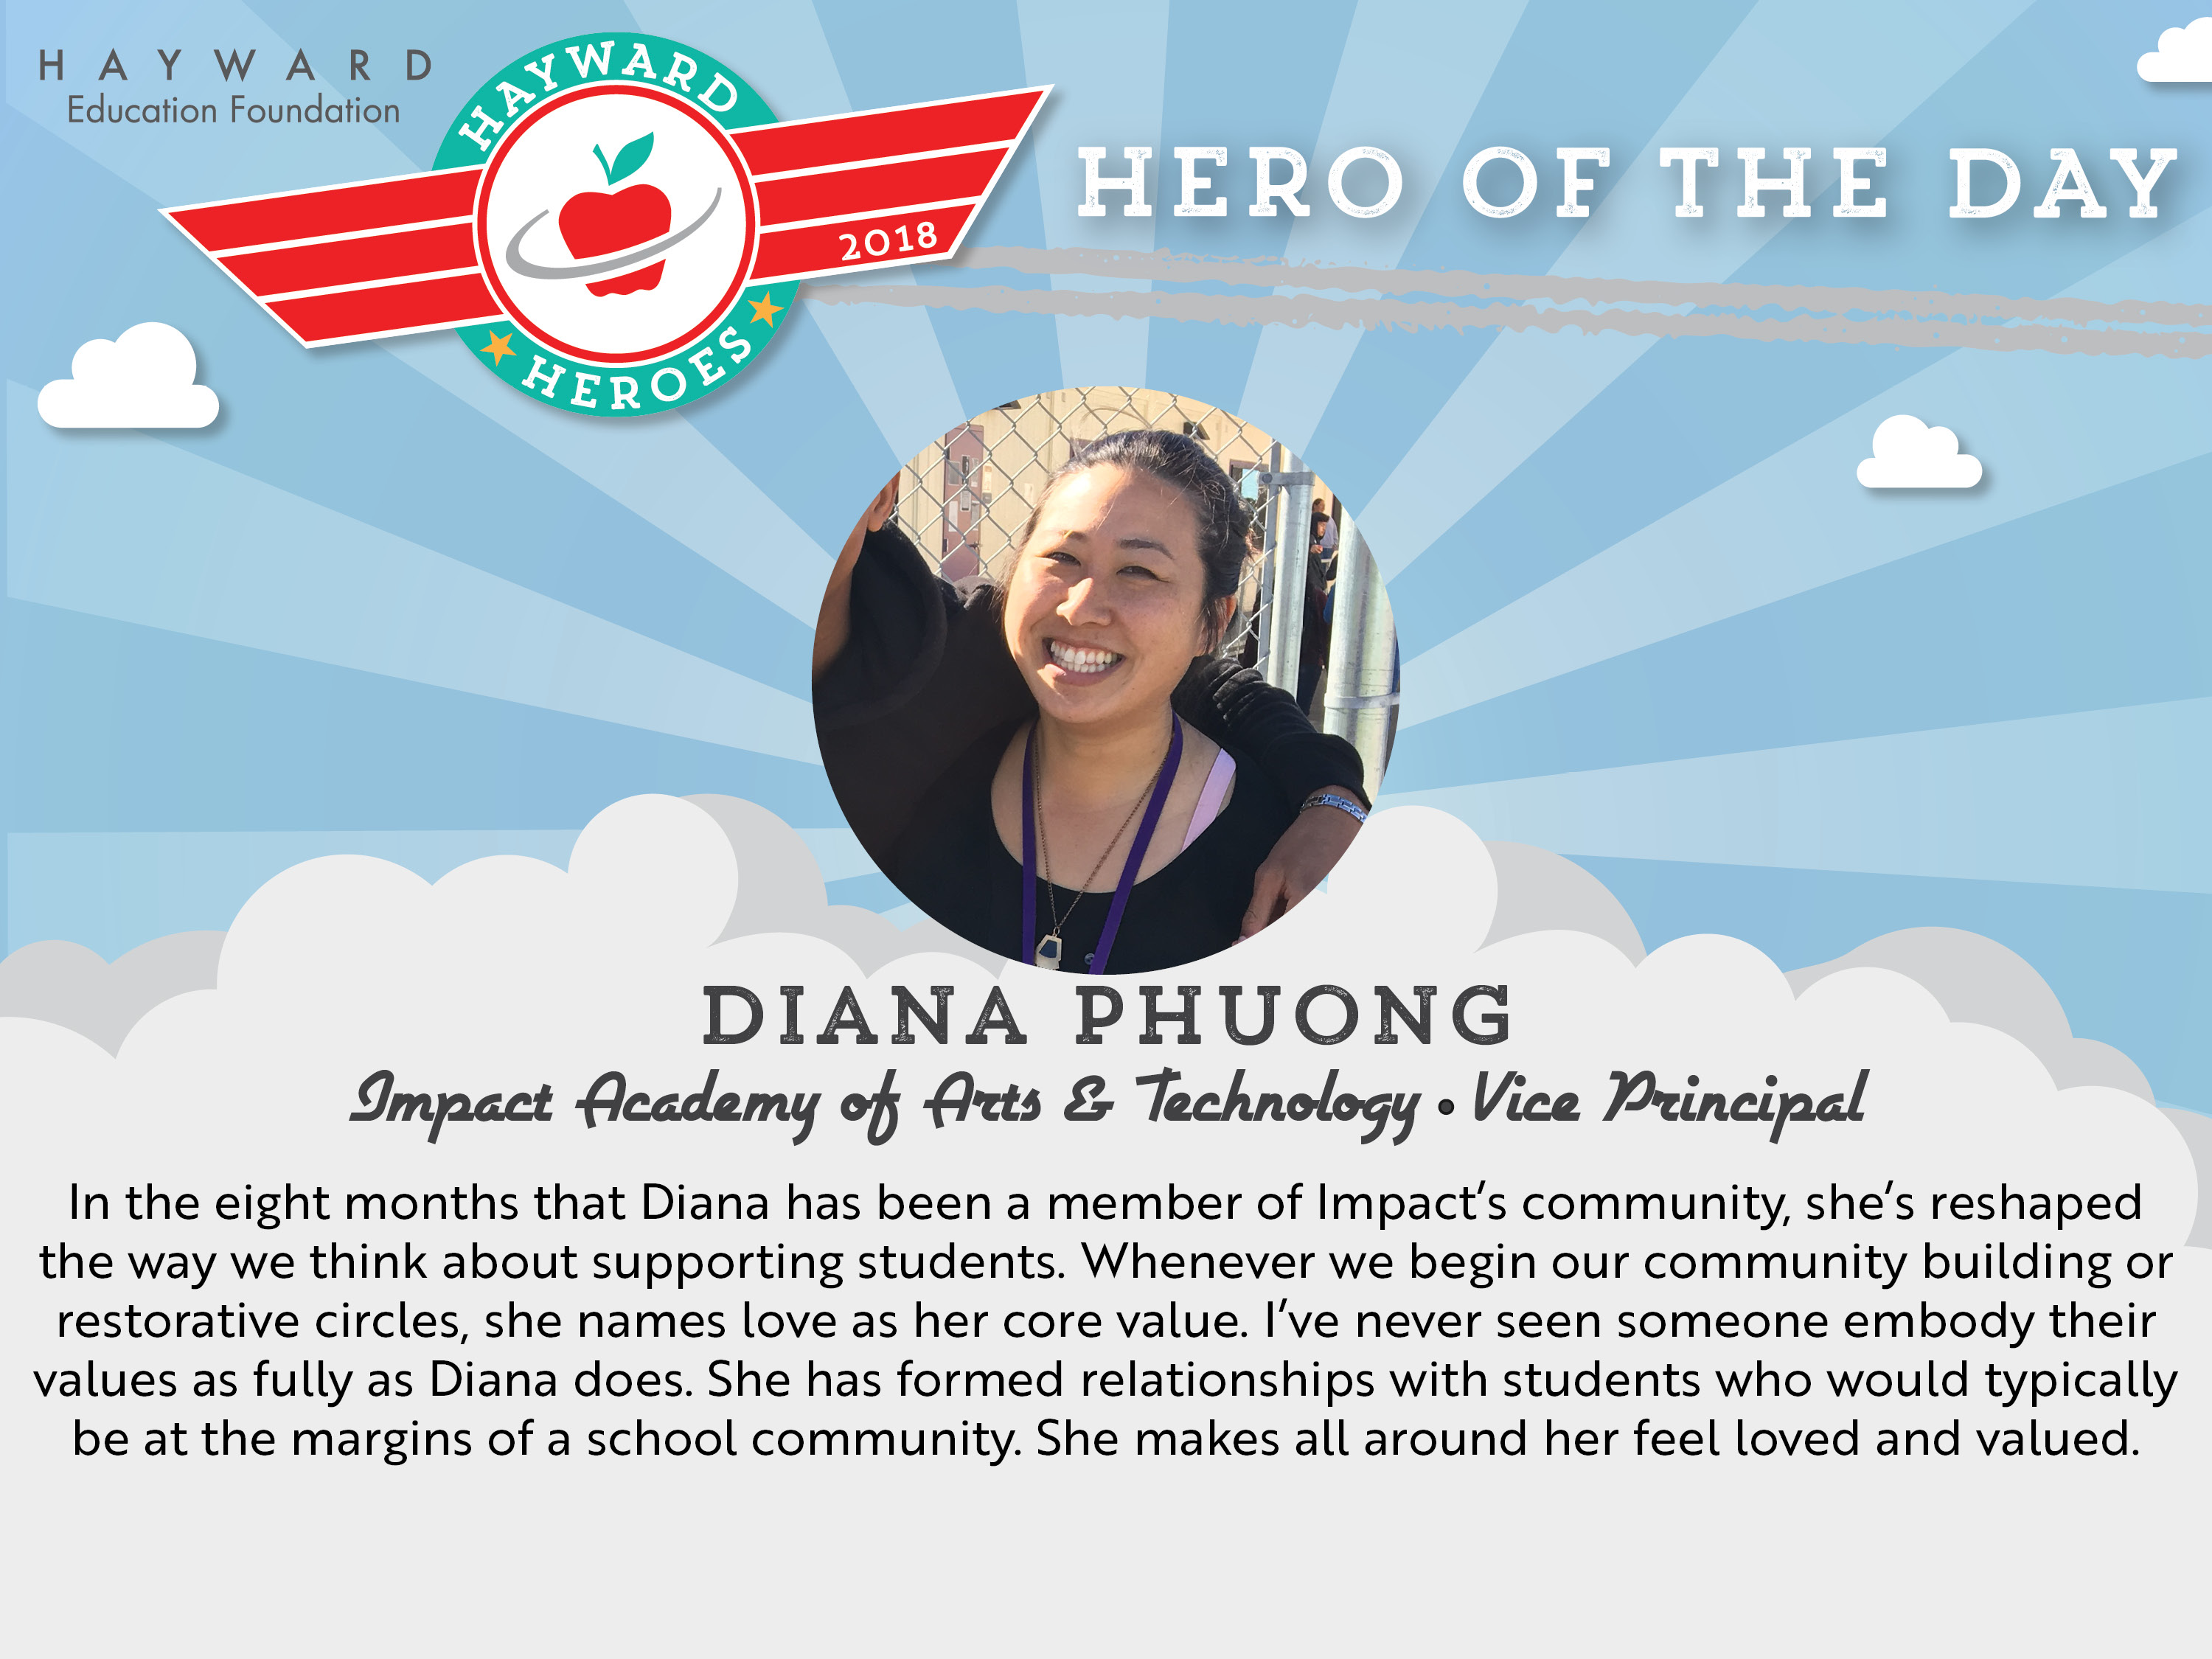 Hero a Day Slides_Phuong Diana